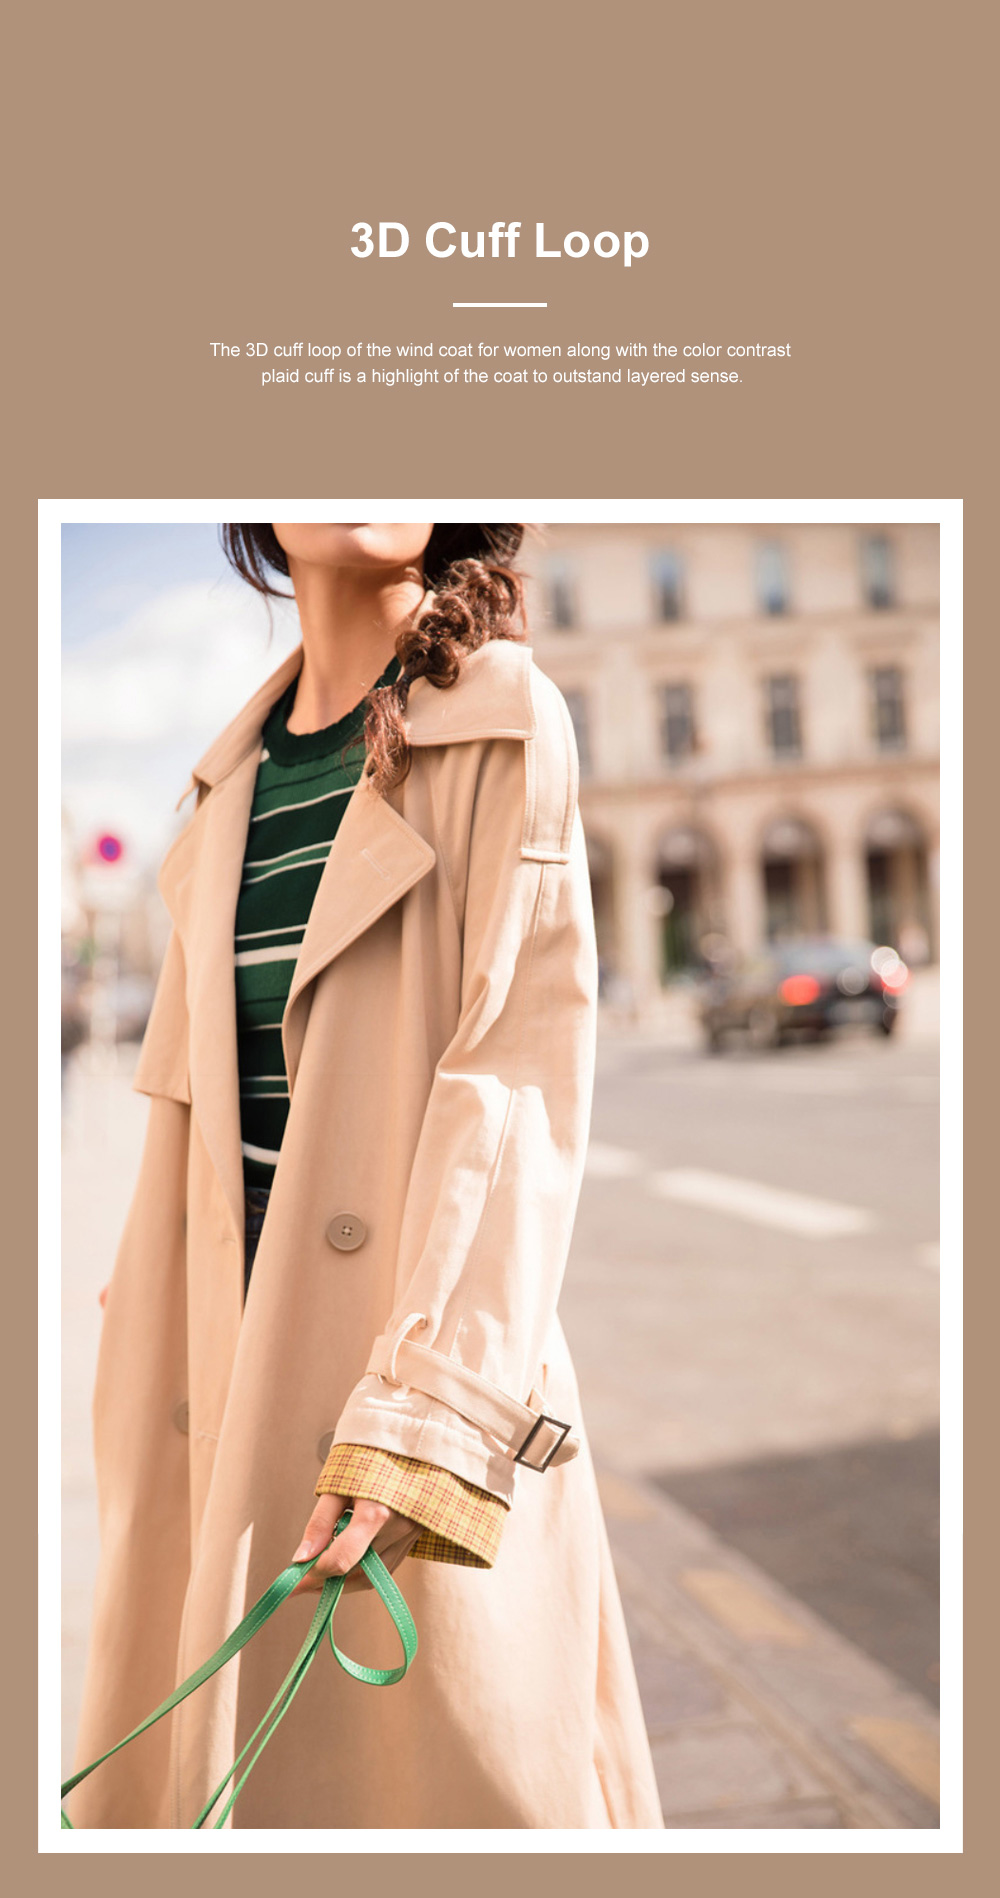 Color Contrast Plaid Cuff Wind Coat New Style Flip Collar Dust Coat for Women Wear Loose Version Mixed Fabric Windbreaker Long Pattern Trench Coat  4